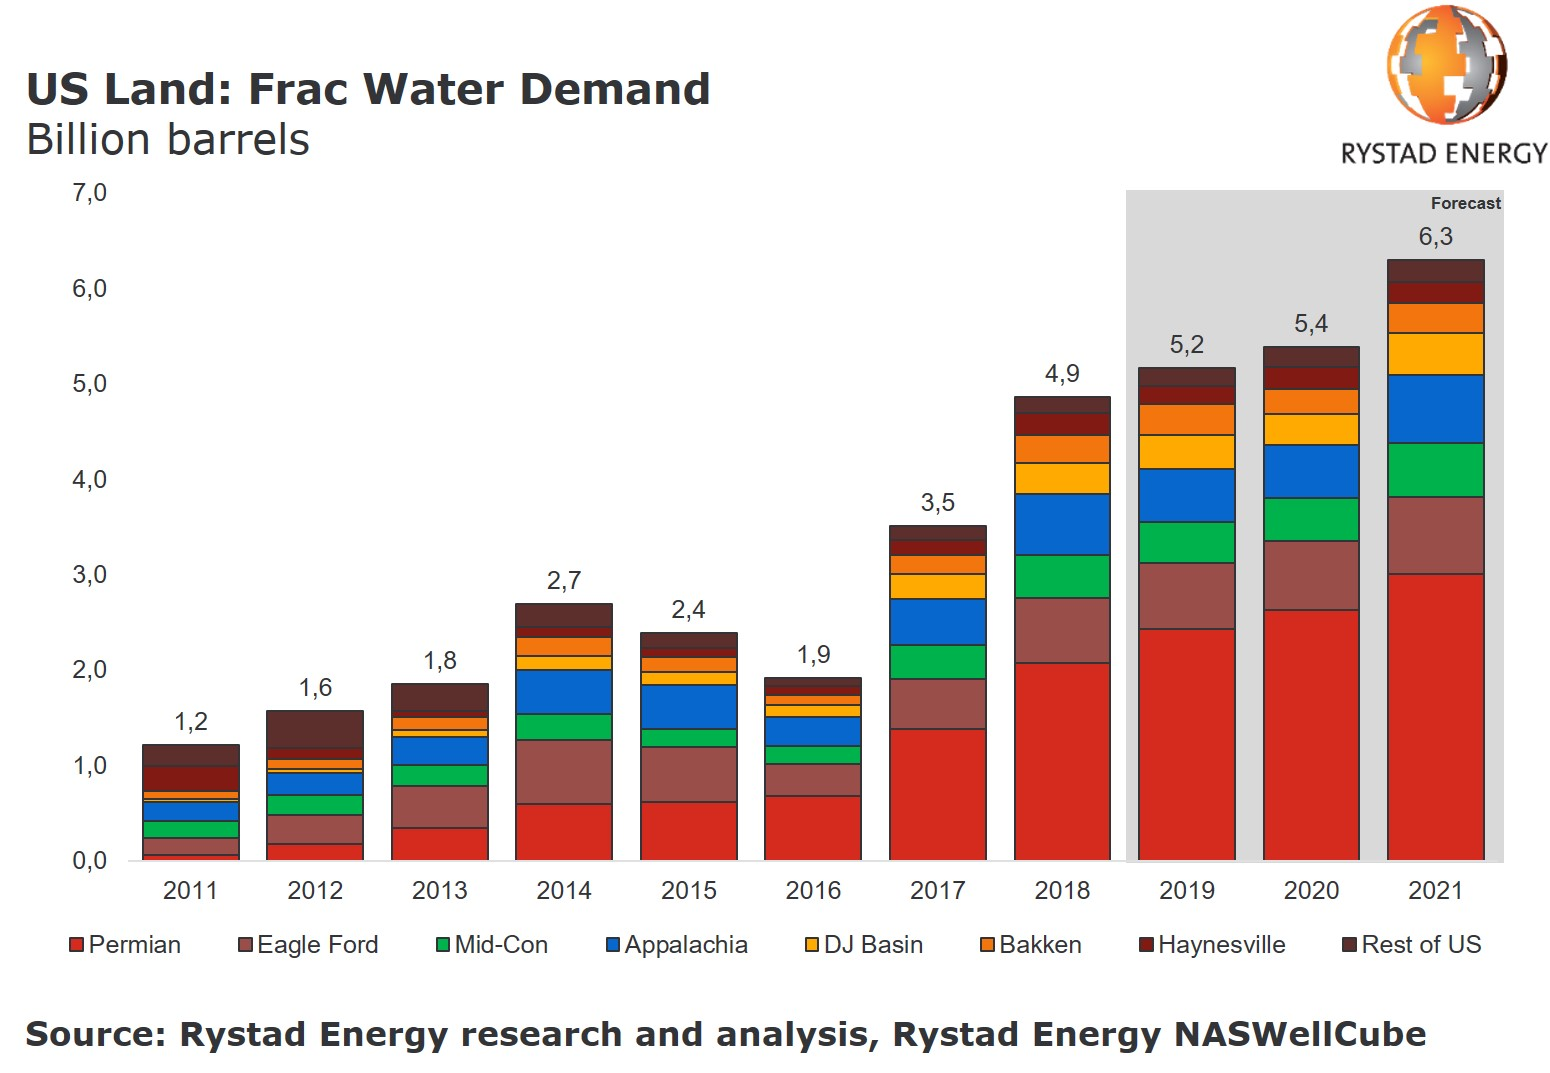 A bar chart showing the US Land: Frac Water Demand in Billion barrels. Source: Rystad Energy research and analysis, Rystad Energy NASWellCube